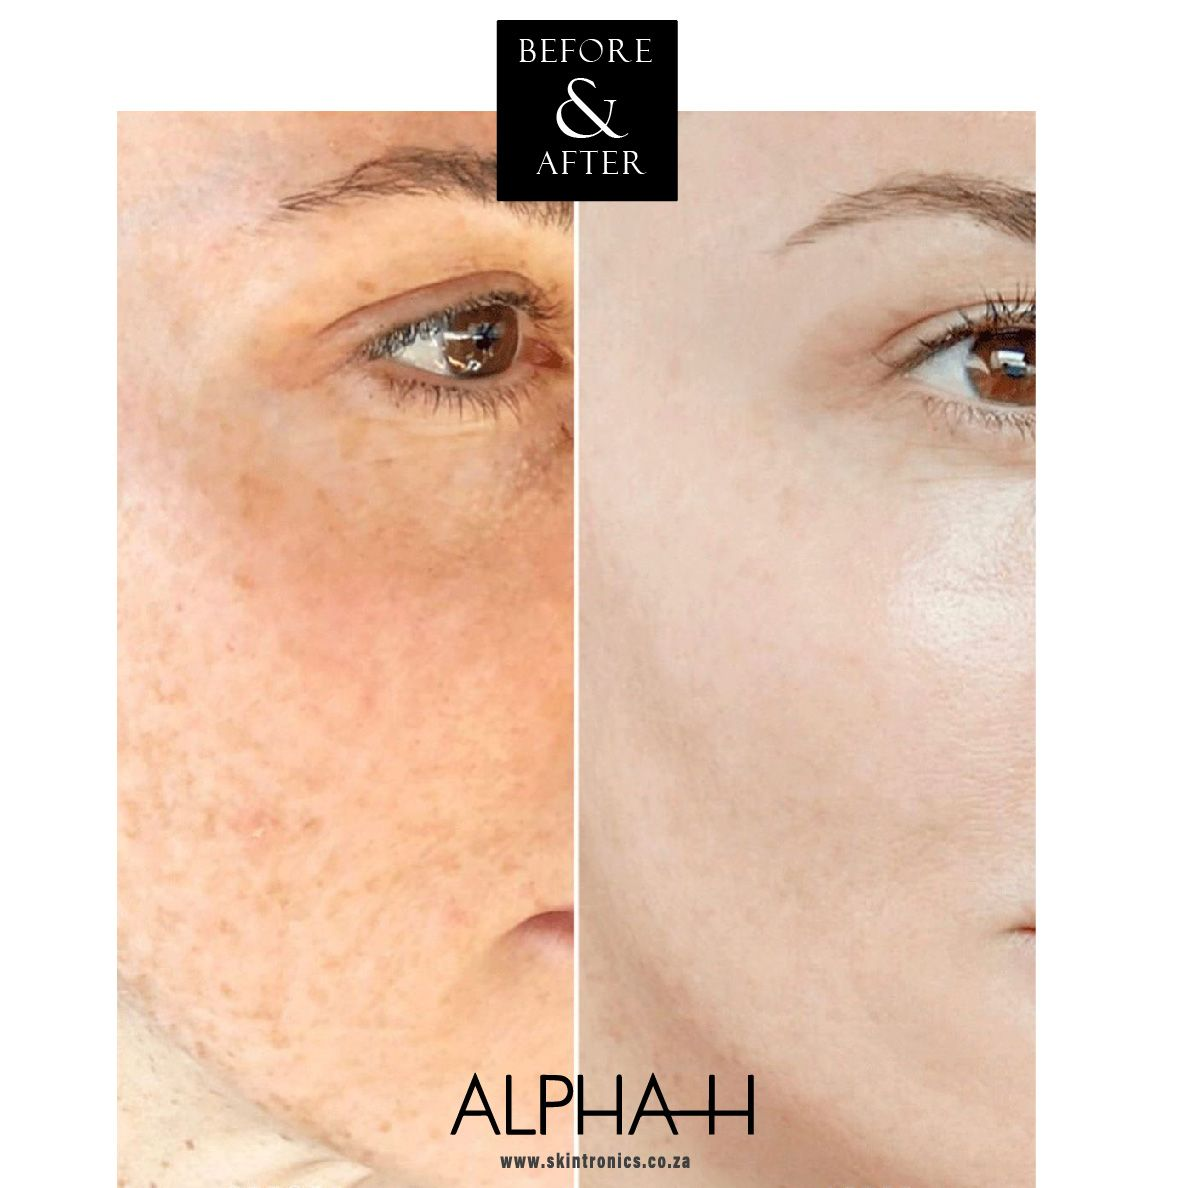 It Just Goes To Show What The Synergy Between Professional Treatments And An Excellent Home Skincare Regime Can Do These Resul In 2020 Skinc Luxury Skincare Skin Care